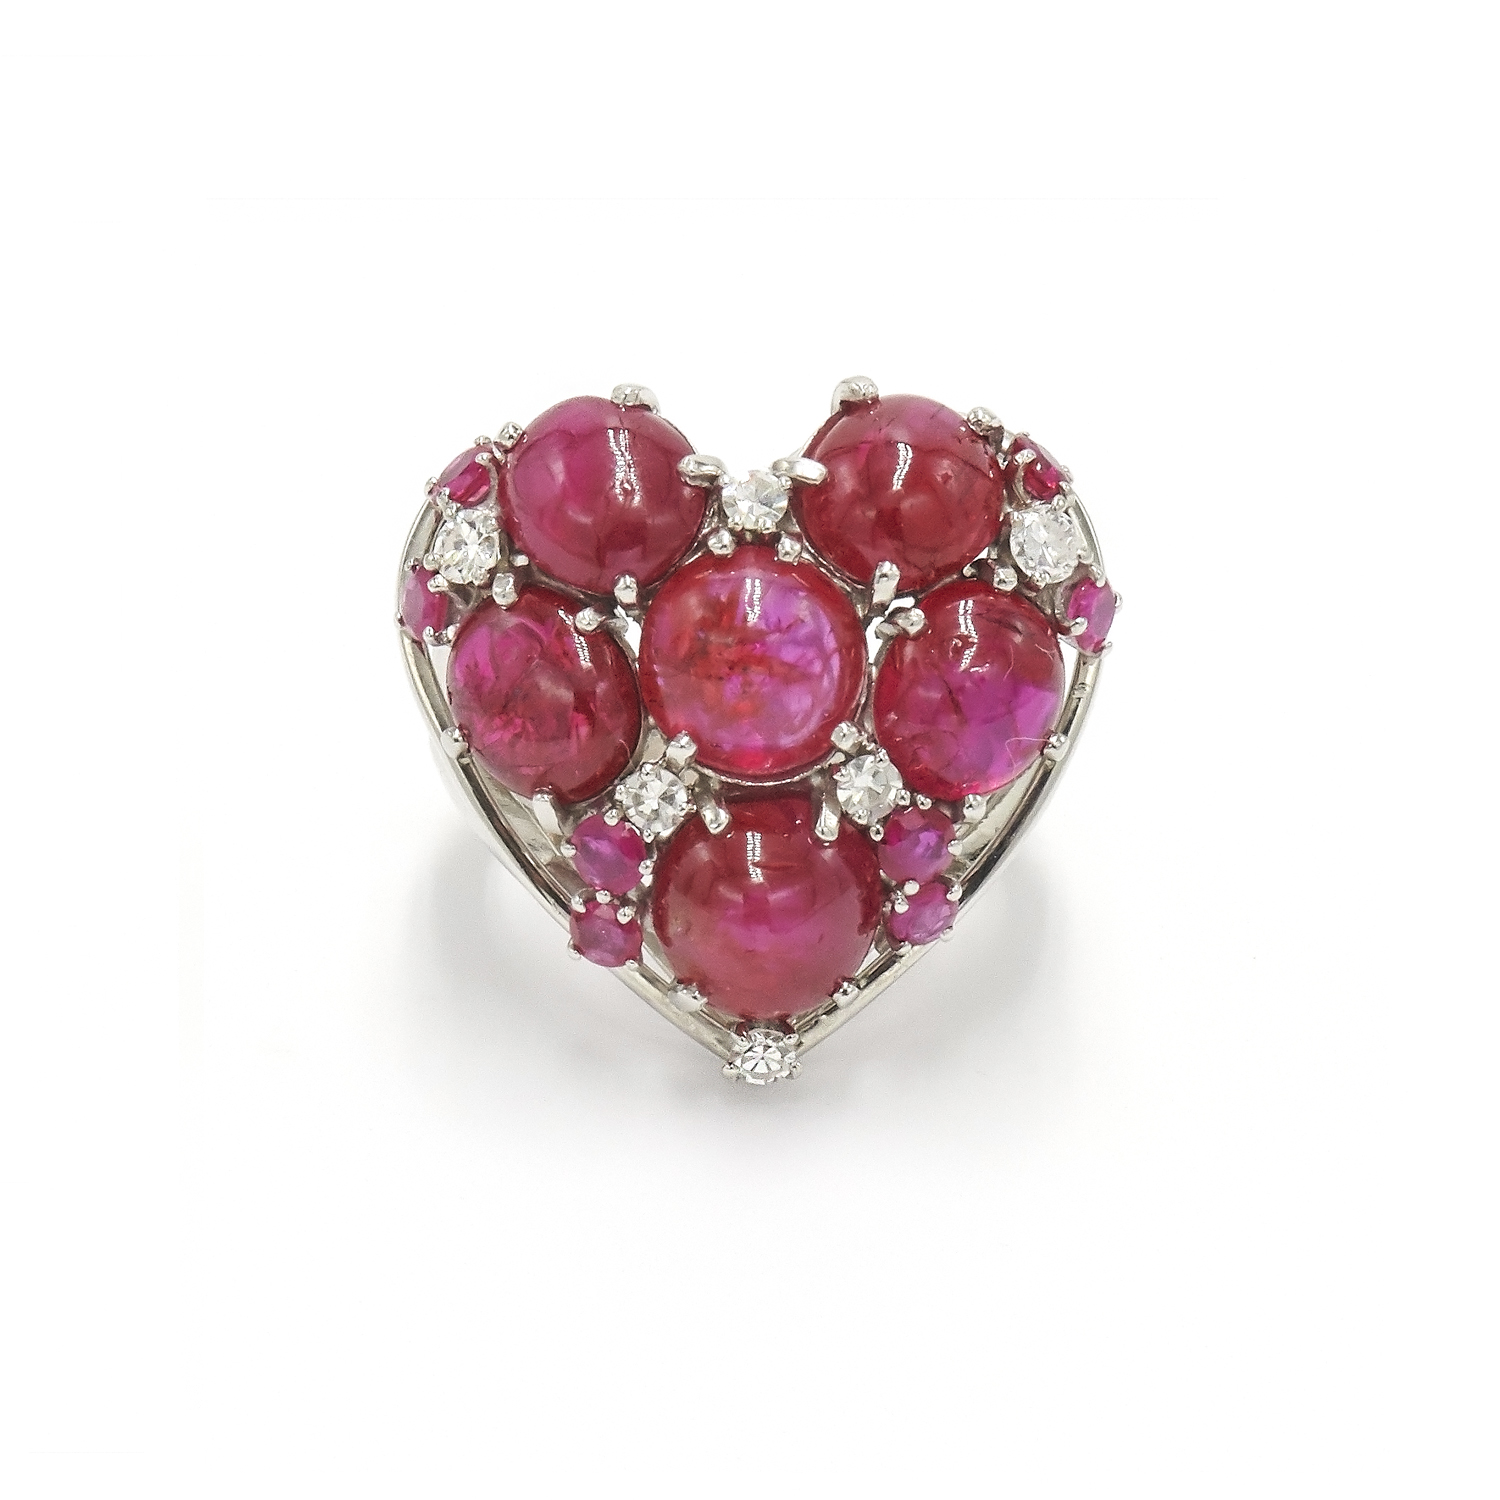 Cabochon Ruby and Diamond Heart Ring Style R-36604-FL-0-0